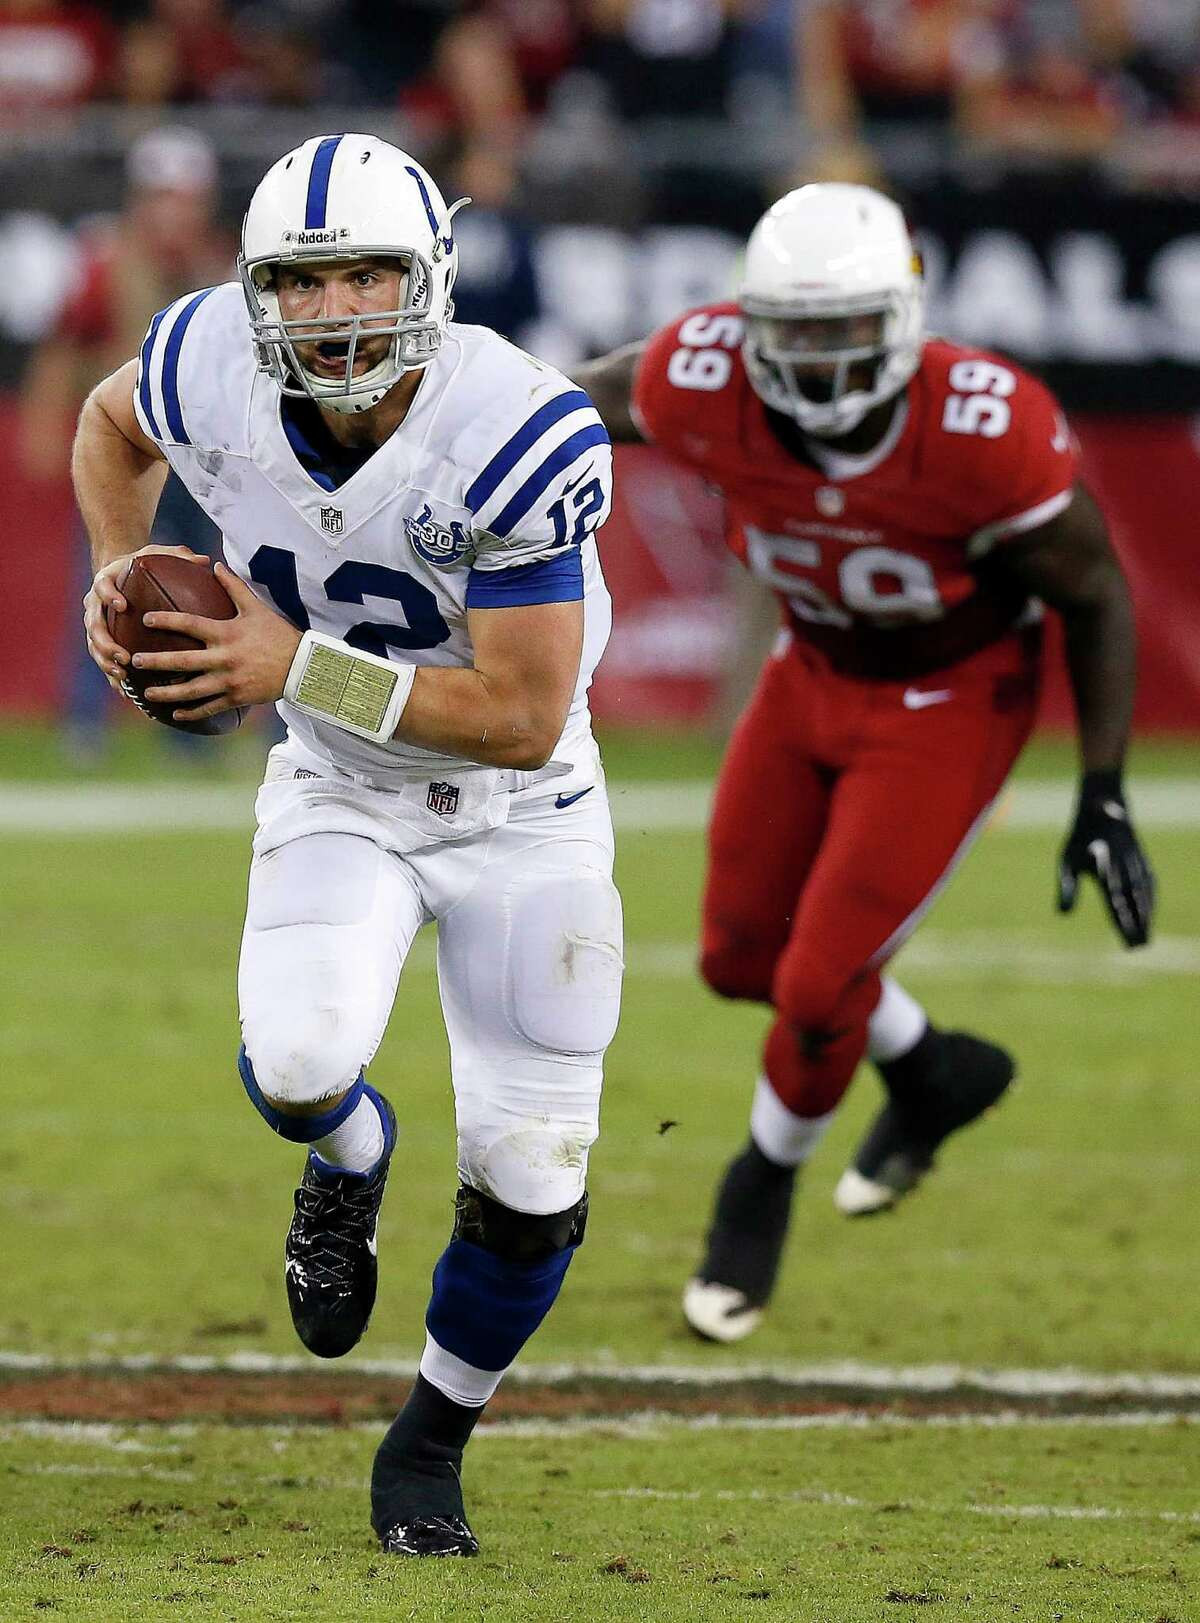 Indianapolis Colts' Andrew Luck (12) scrambles away from Arizona Cardinals' Marcus Benard (59) during the second half of an NFL football game Sunday, Nov. 24, 2013, in Glendale, Ariz. The Cardinals defeated the Colts 40-11. (AP Photo/Ross D. Franklin)